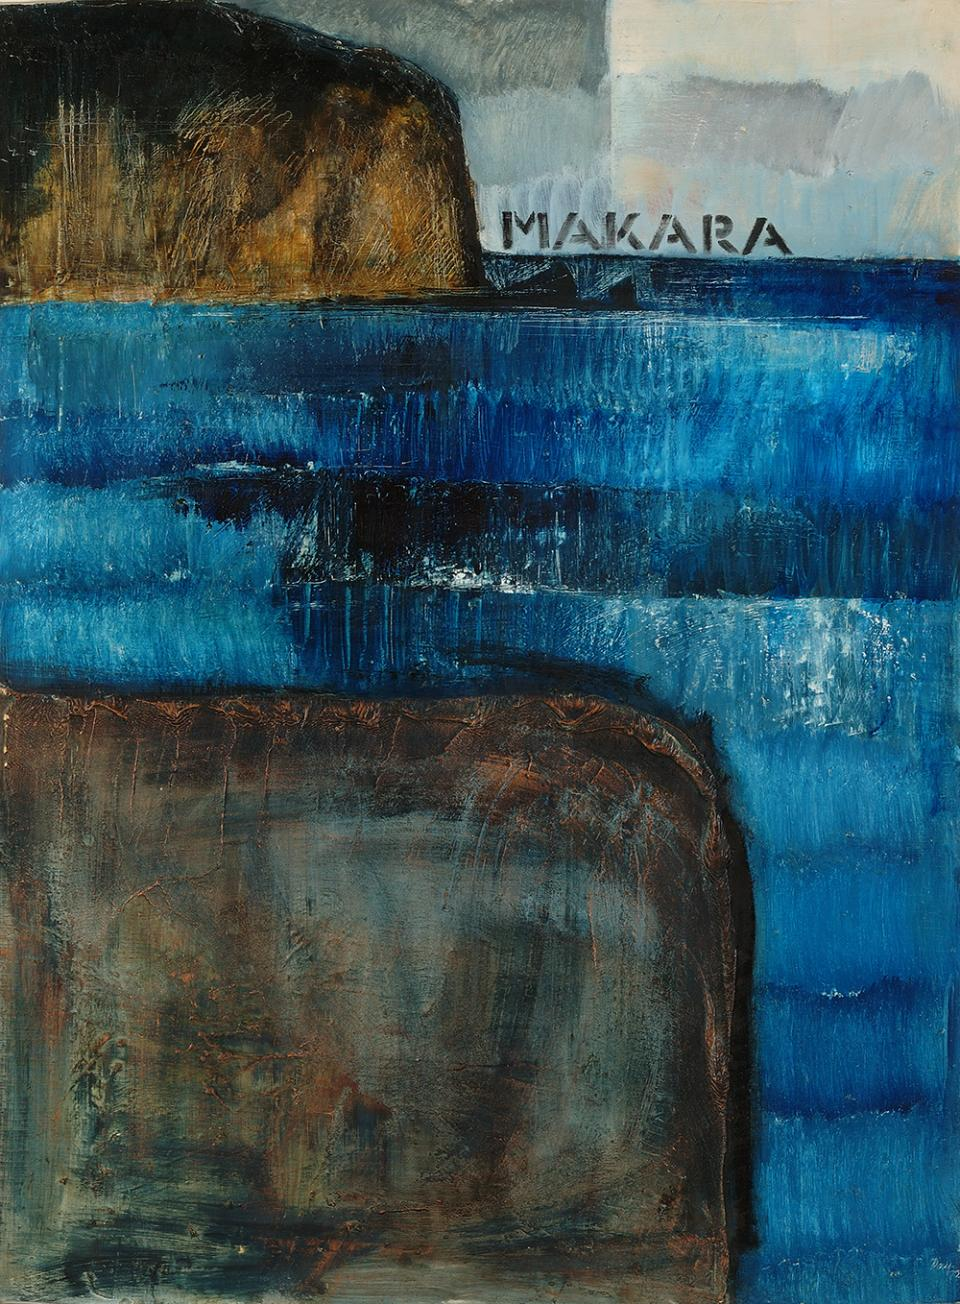 Melvin Day, Makara (1972), oil on canvas, Collection of Aratoi Wairarapa Museum of Art and History. Norman Prior bequest. Courtesy of the Oroya and Melvin Day Charitable Trust.